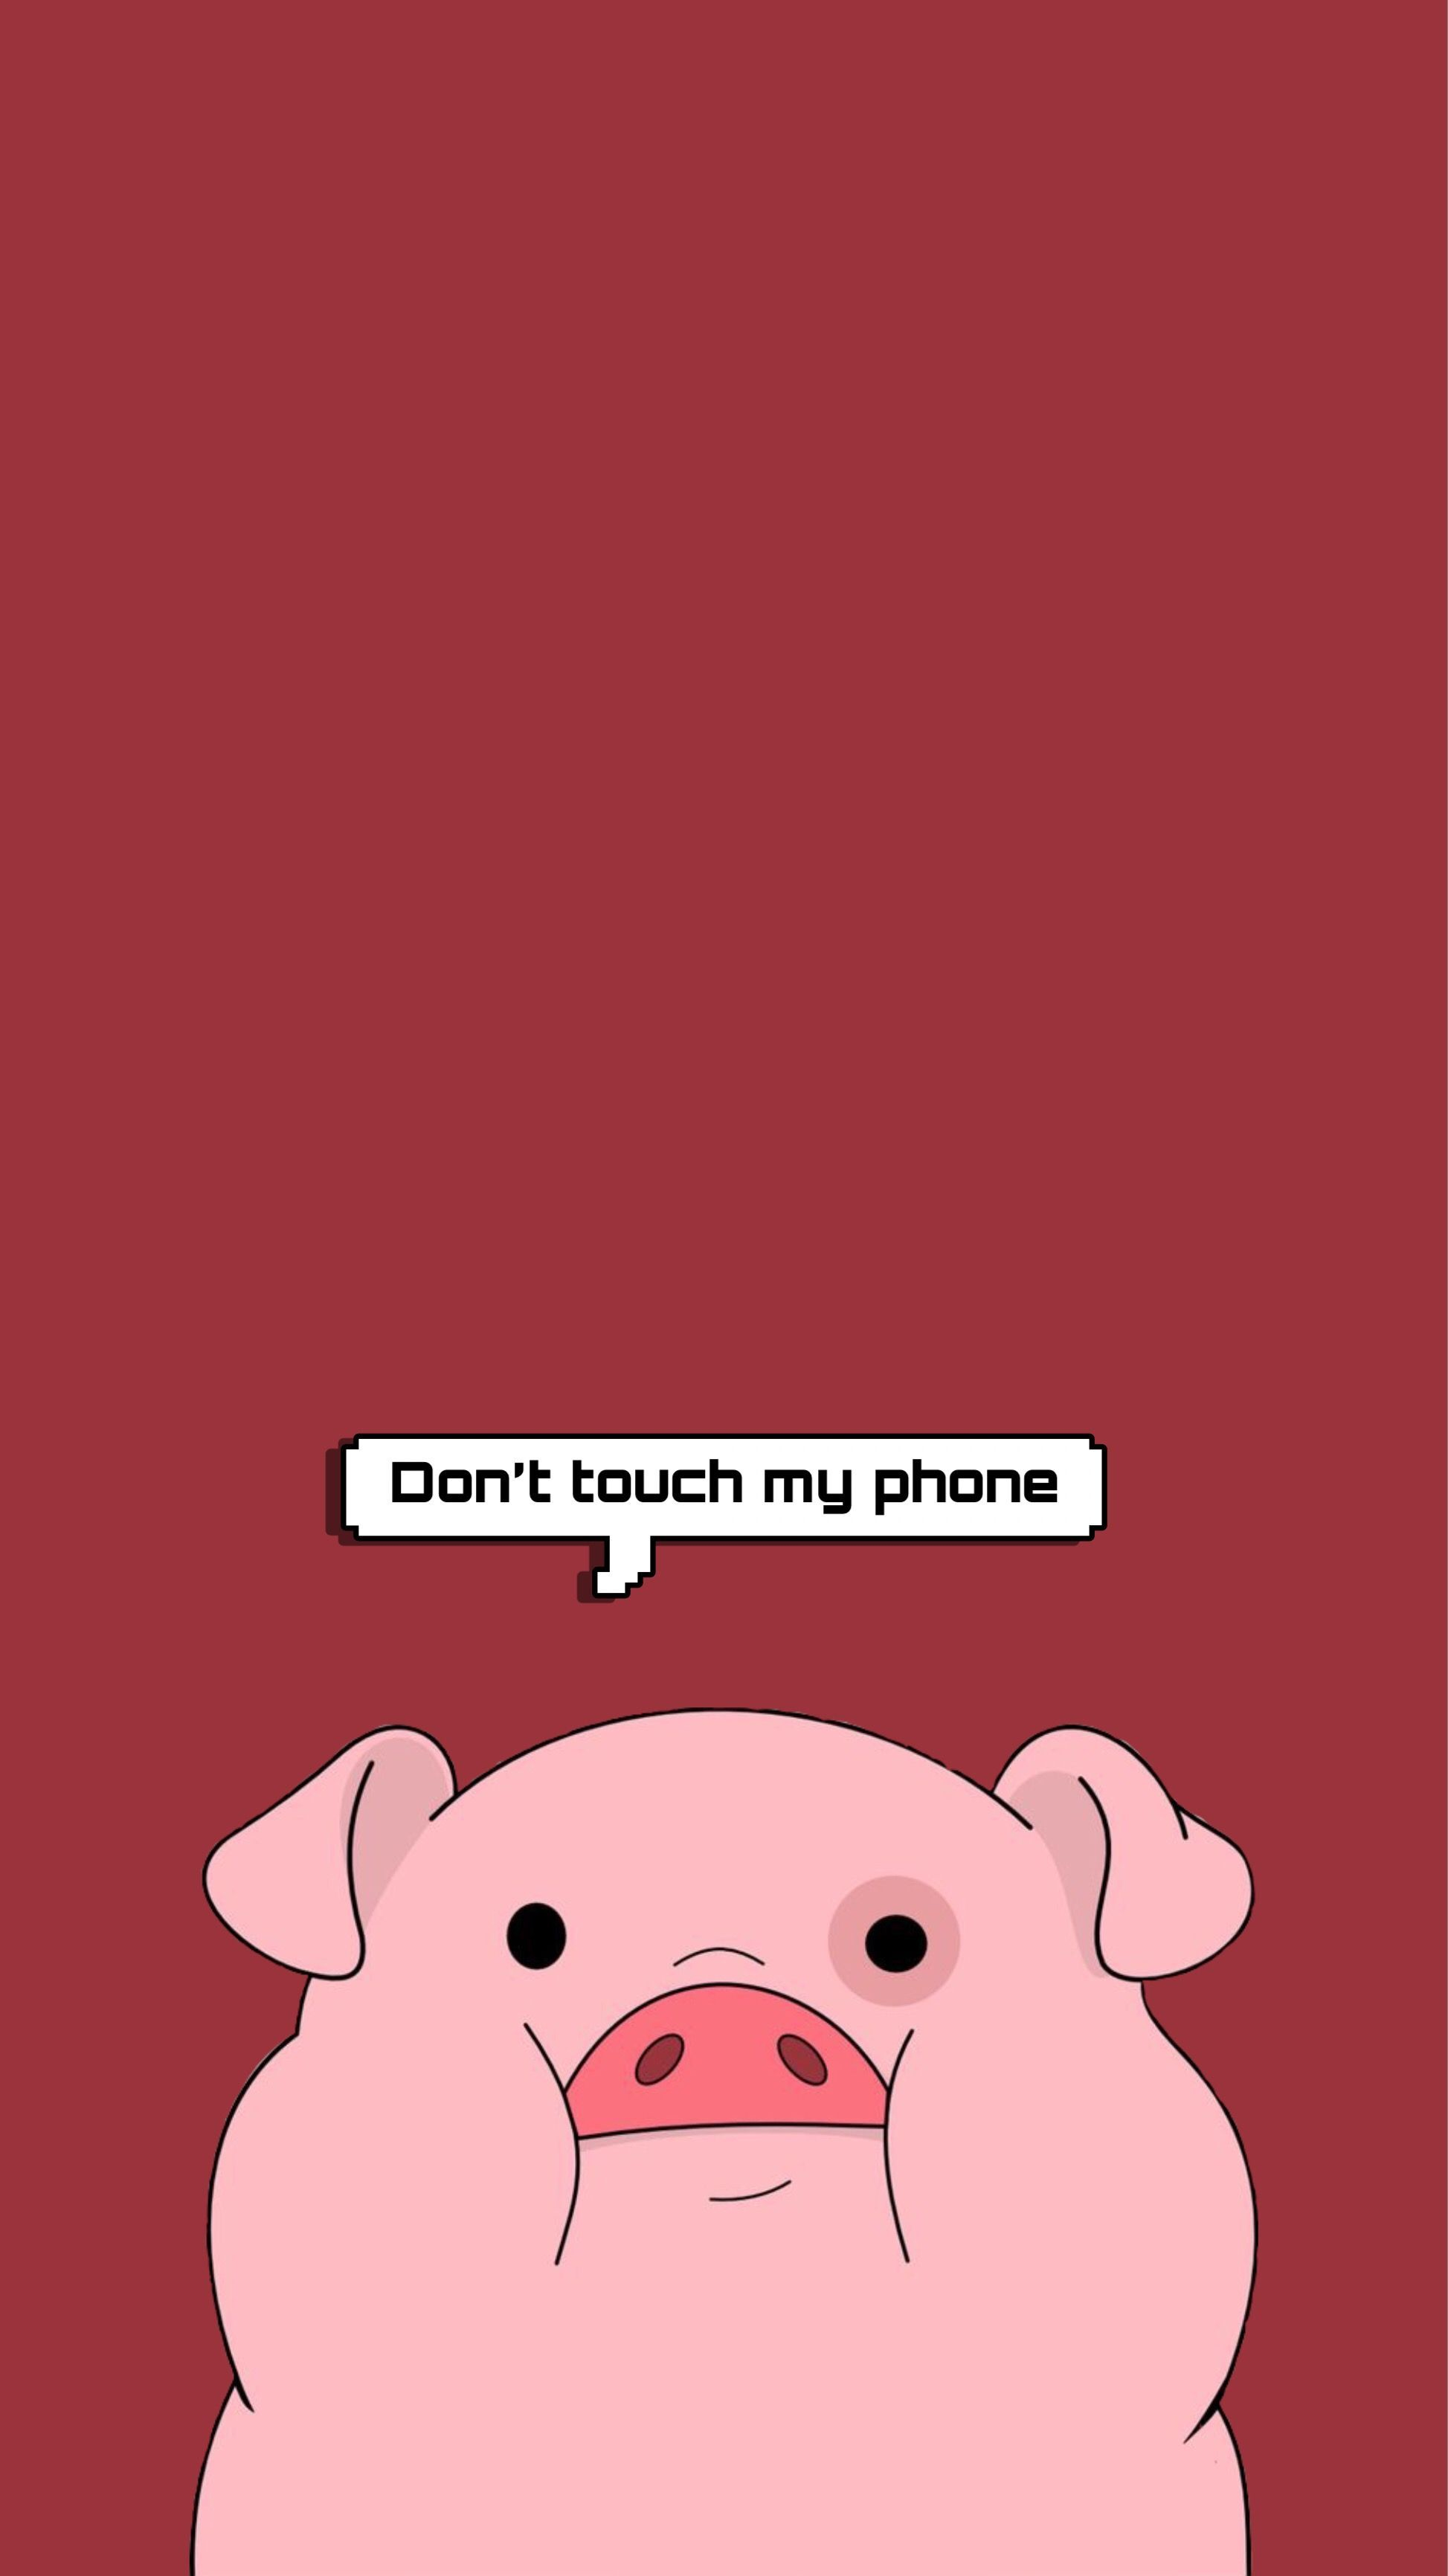 20 Anime Aesthetic Phone Wallpaper In 2020 Iphone Wallpaper Quotes Funny Funny Iphone Wallpaper Funny Phone Wallpaper Funny anime iphone wallpapers